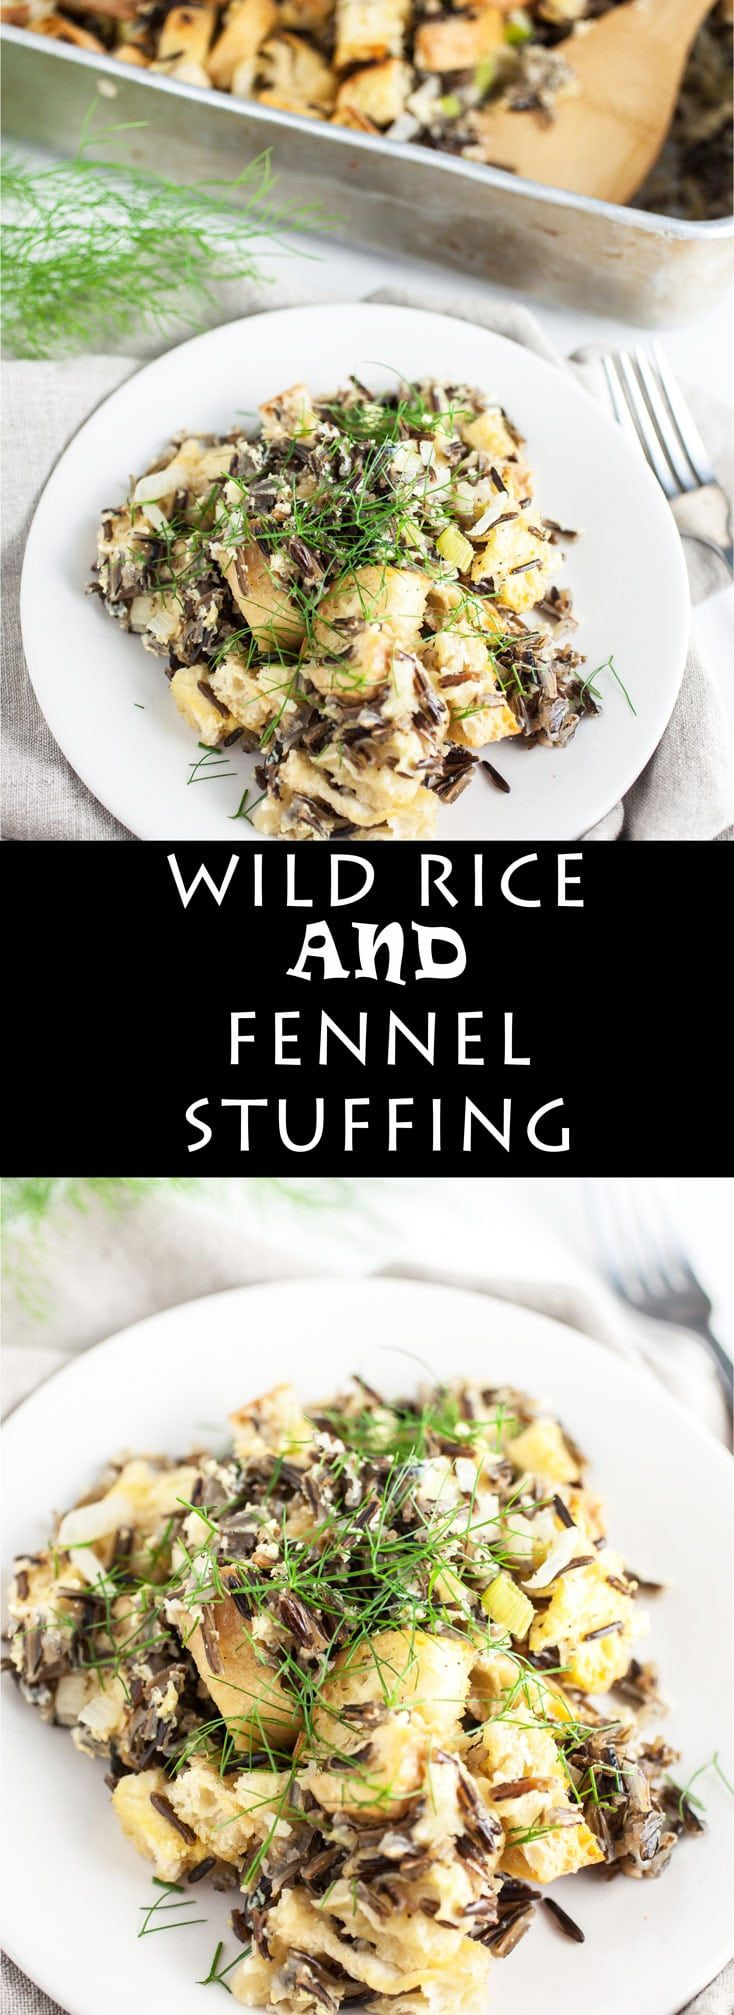 This Wild Rice and Fennel Stuffing is the perfect Thanksgiving side dish! This homemade stuffing recipe is made with toasted bread cubes. It's hearty, aromatic, and vegetarian. Try this twist on a traditional Thanksgiving recipe! It's down to earth and elegant at the same time. #stuffing #thanksgiving #wildrice #fennel #vegetarian